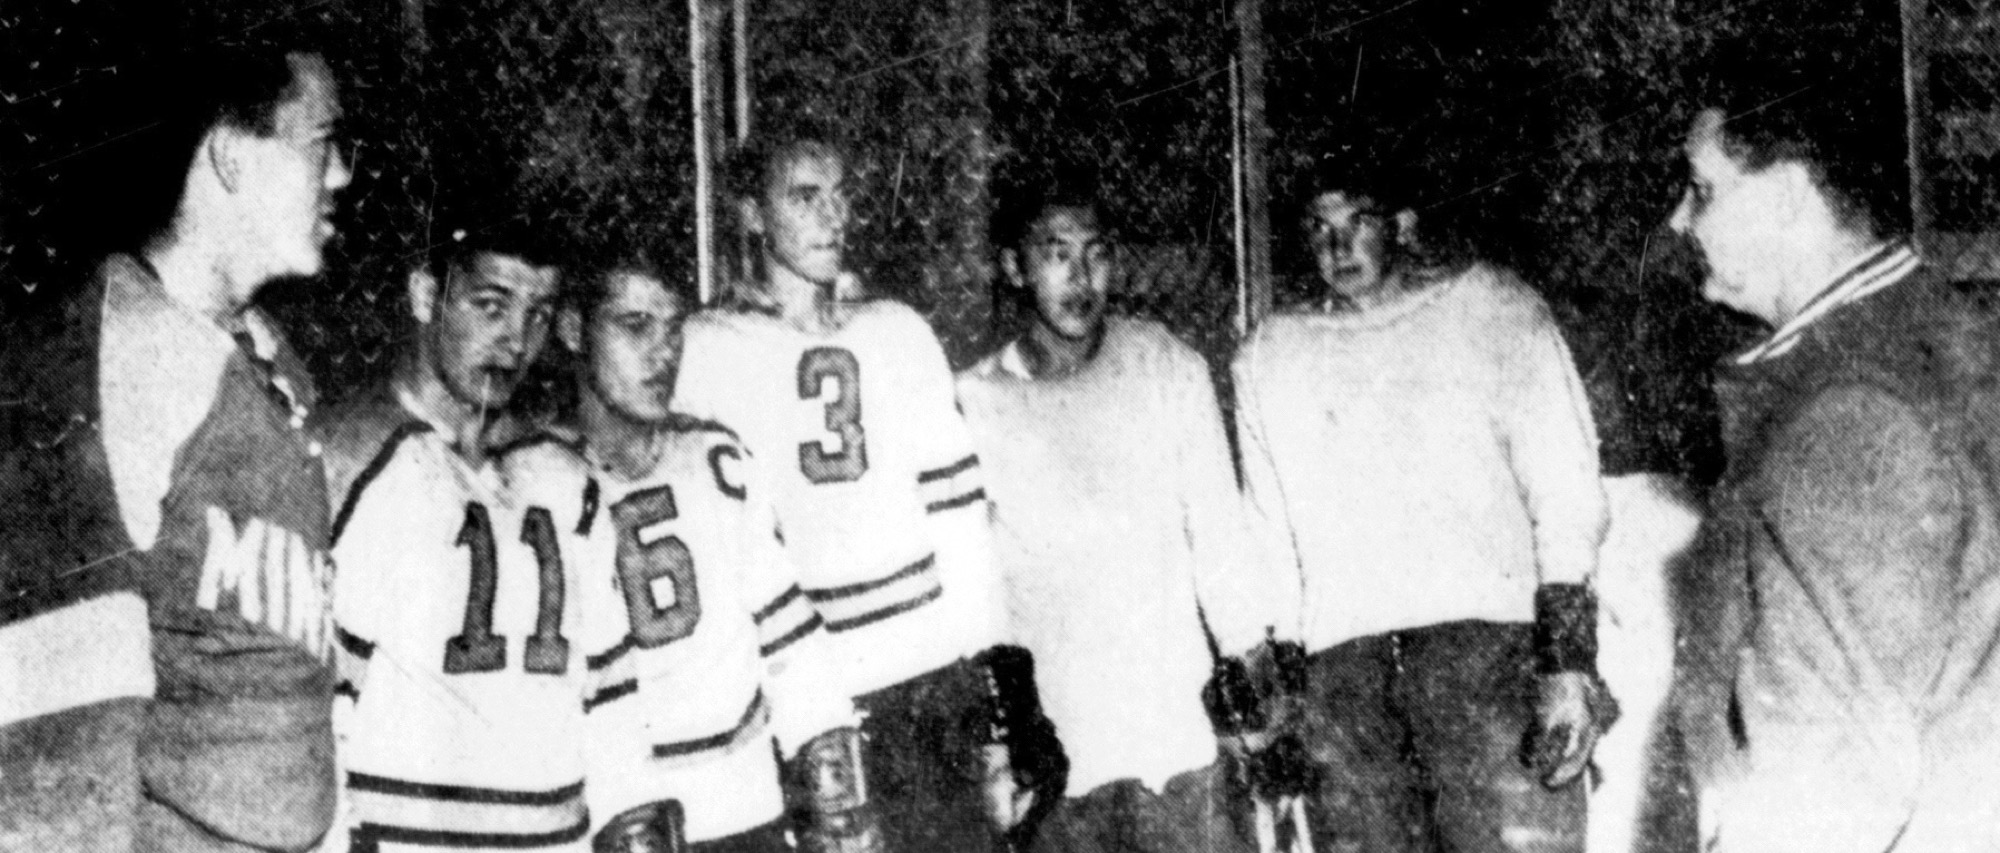 New Brandon Wheat Kings head coach (Sugar) Jim Henry, right, speaks to hopefuls, left to right, Darryl Tillsley, Doug Cronk (11), Sid Boyer (6), Larry Brown (3), Danny Namba of Dominion City and Bill Mikkelson of Brookdale at the team's training camp on Sept. 26, 1964.